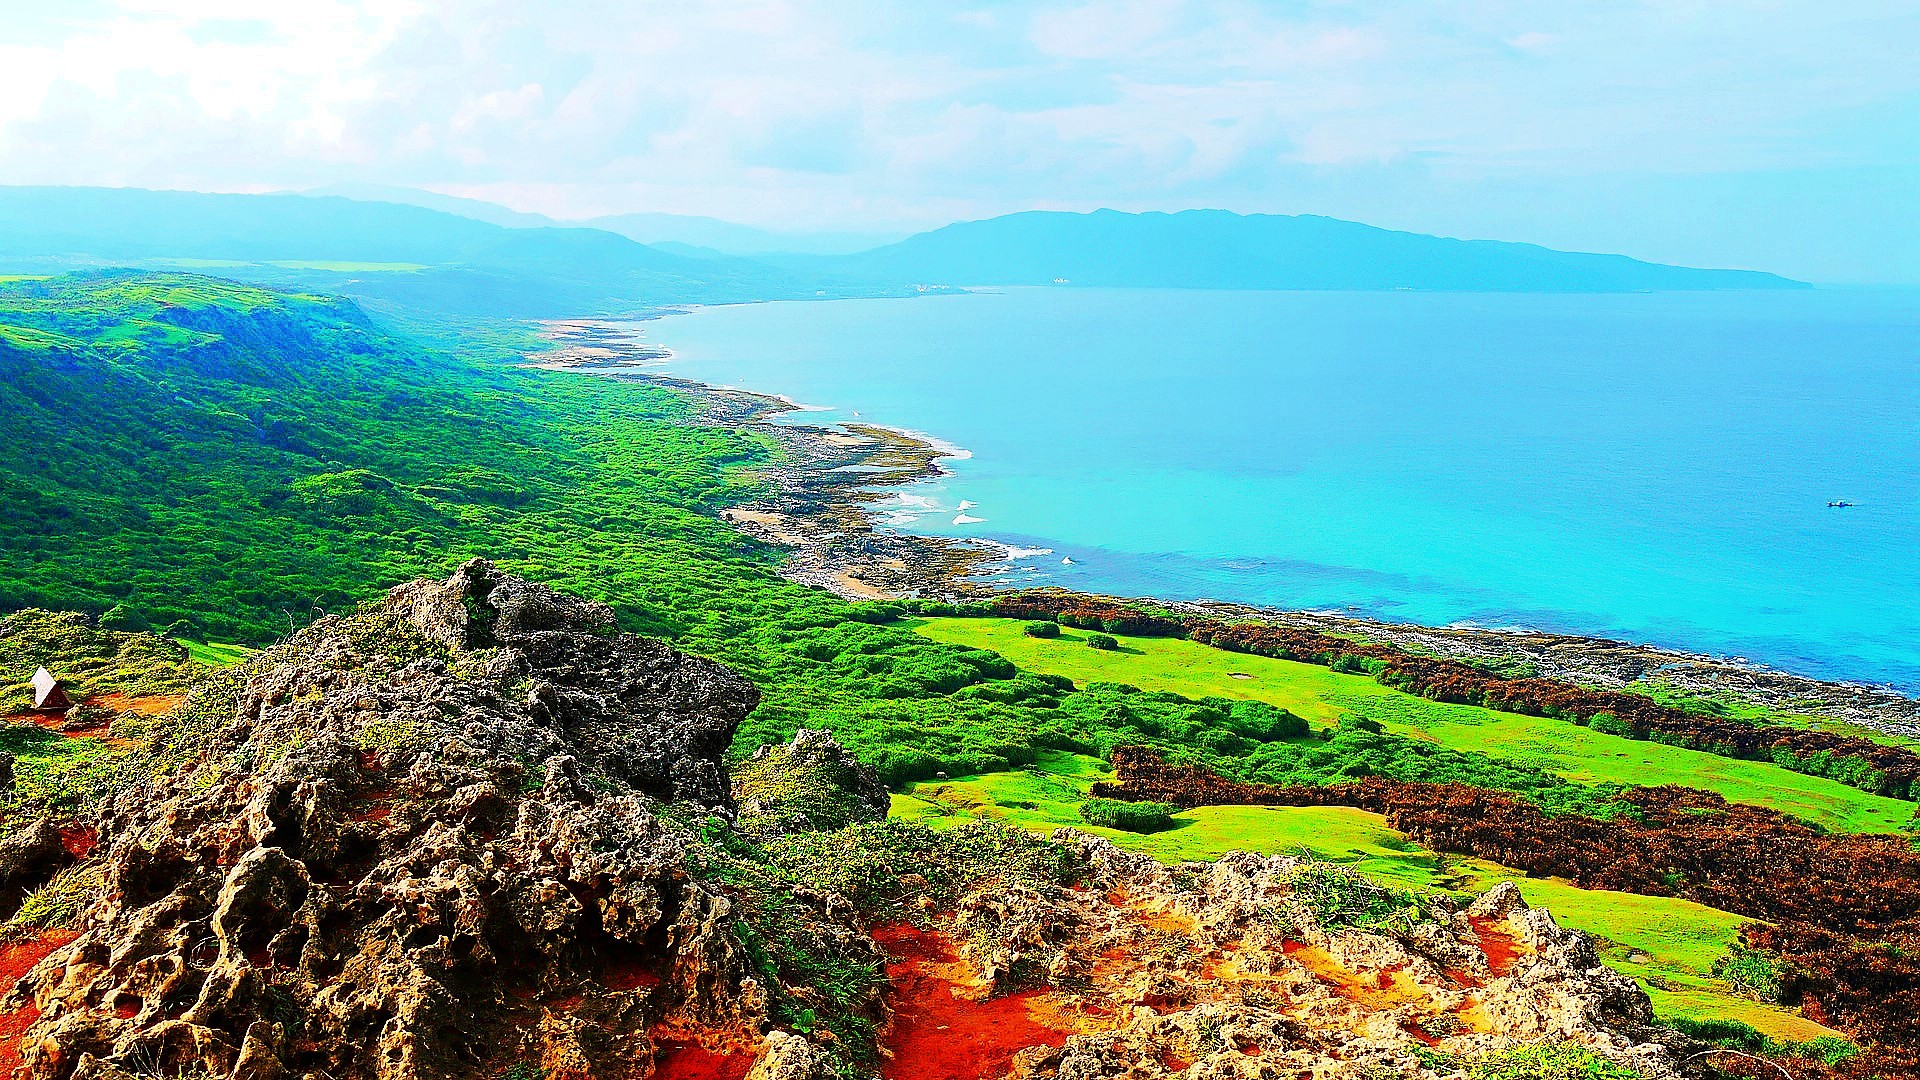 National-Park-Kenting-Beach-Taiwan